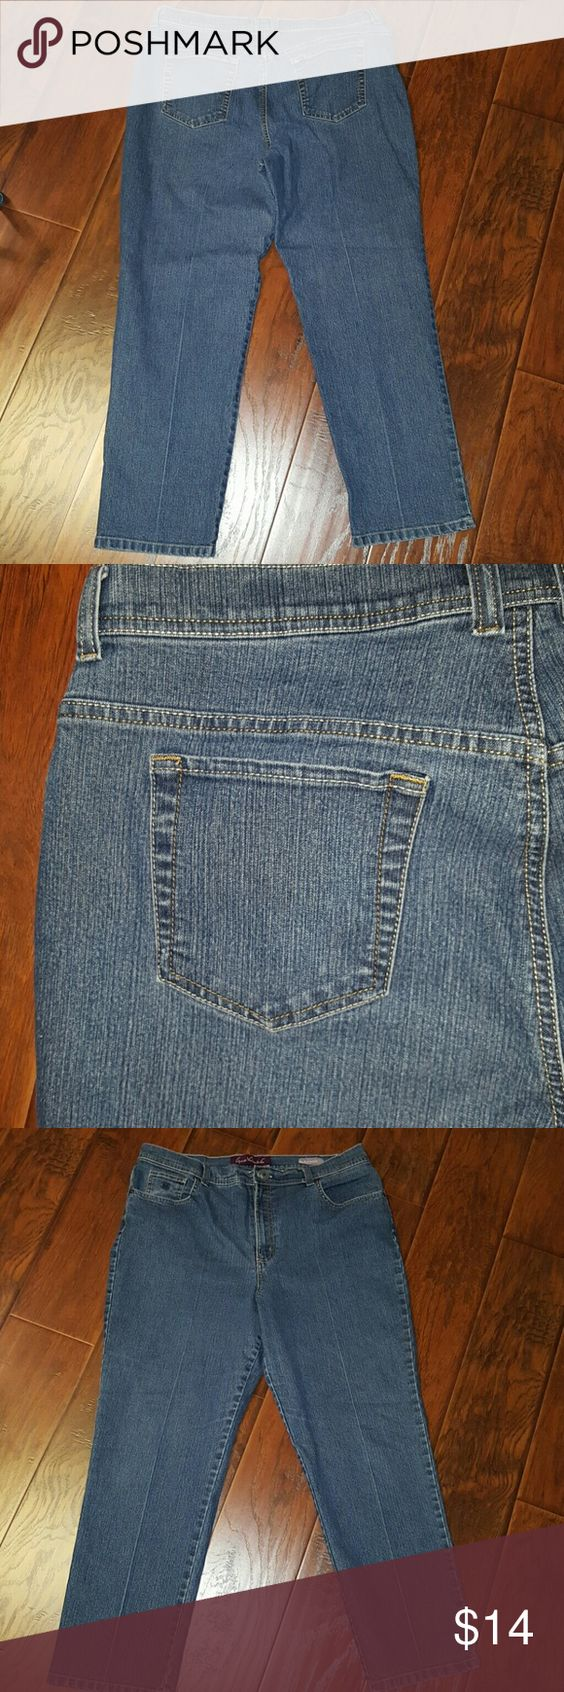 Gloria Vanderbilt jeans Amanda size 18 short Gloria Vanderbilt jeans Amanda size 18 short. Inseam measures approximately 28 inches.   Bundle two or more items and save 15% instantly at checkout! Gloria Vanderbilt Jeans